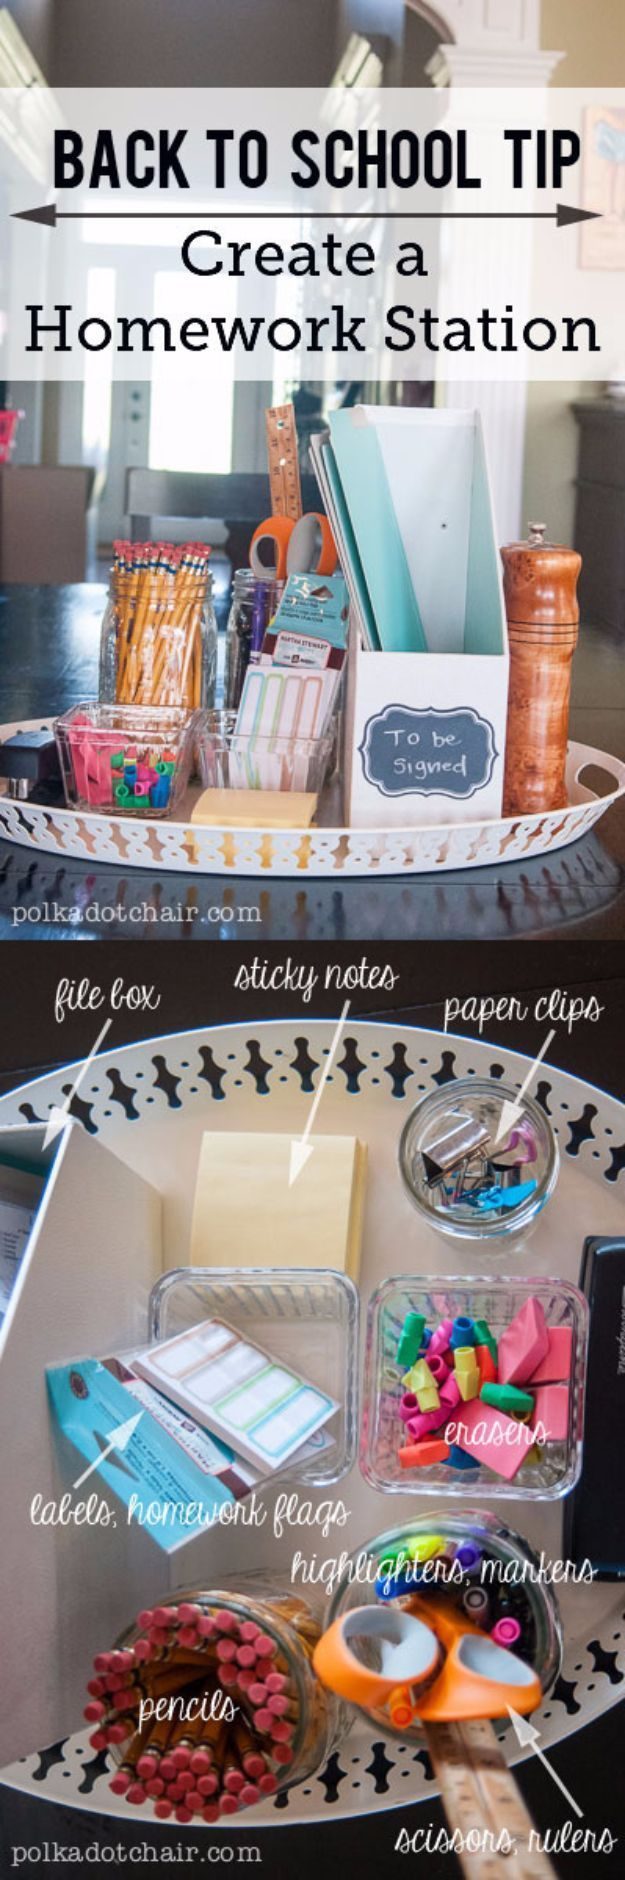 20 Awesome Back To School DIY-Ideen, die Sie versuchen müssen #backtoschool